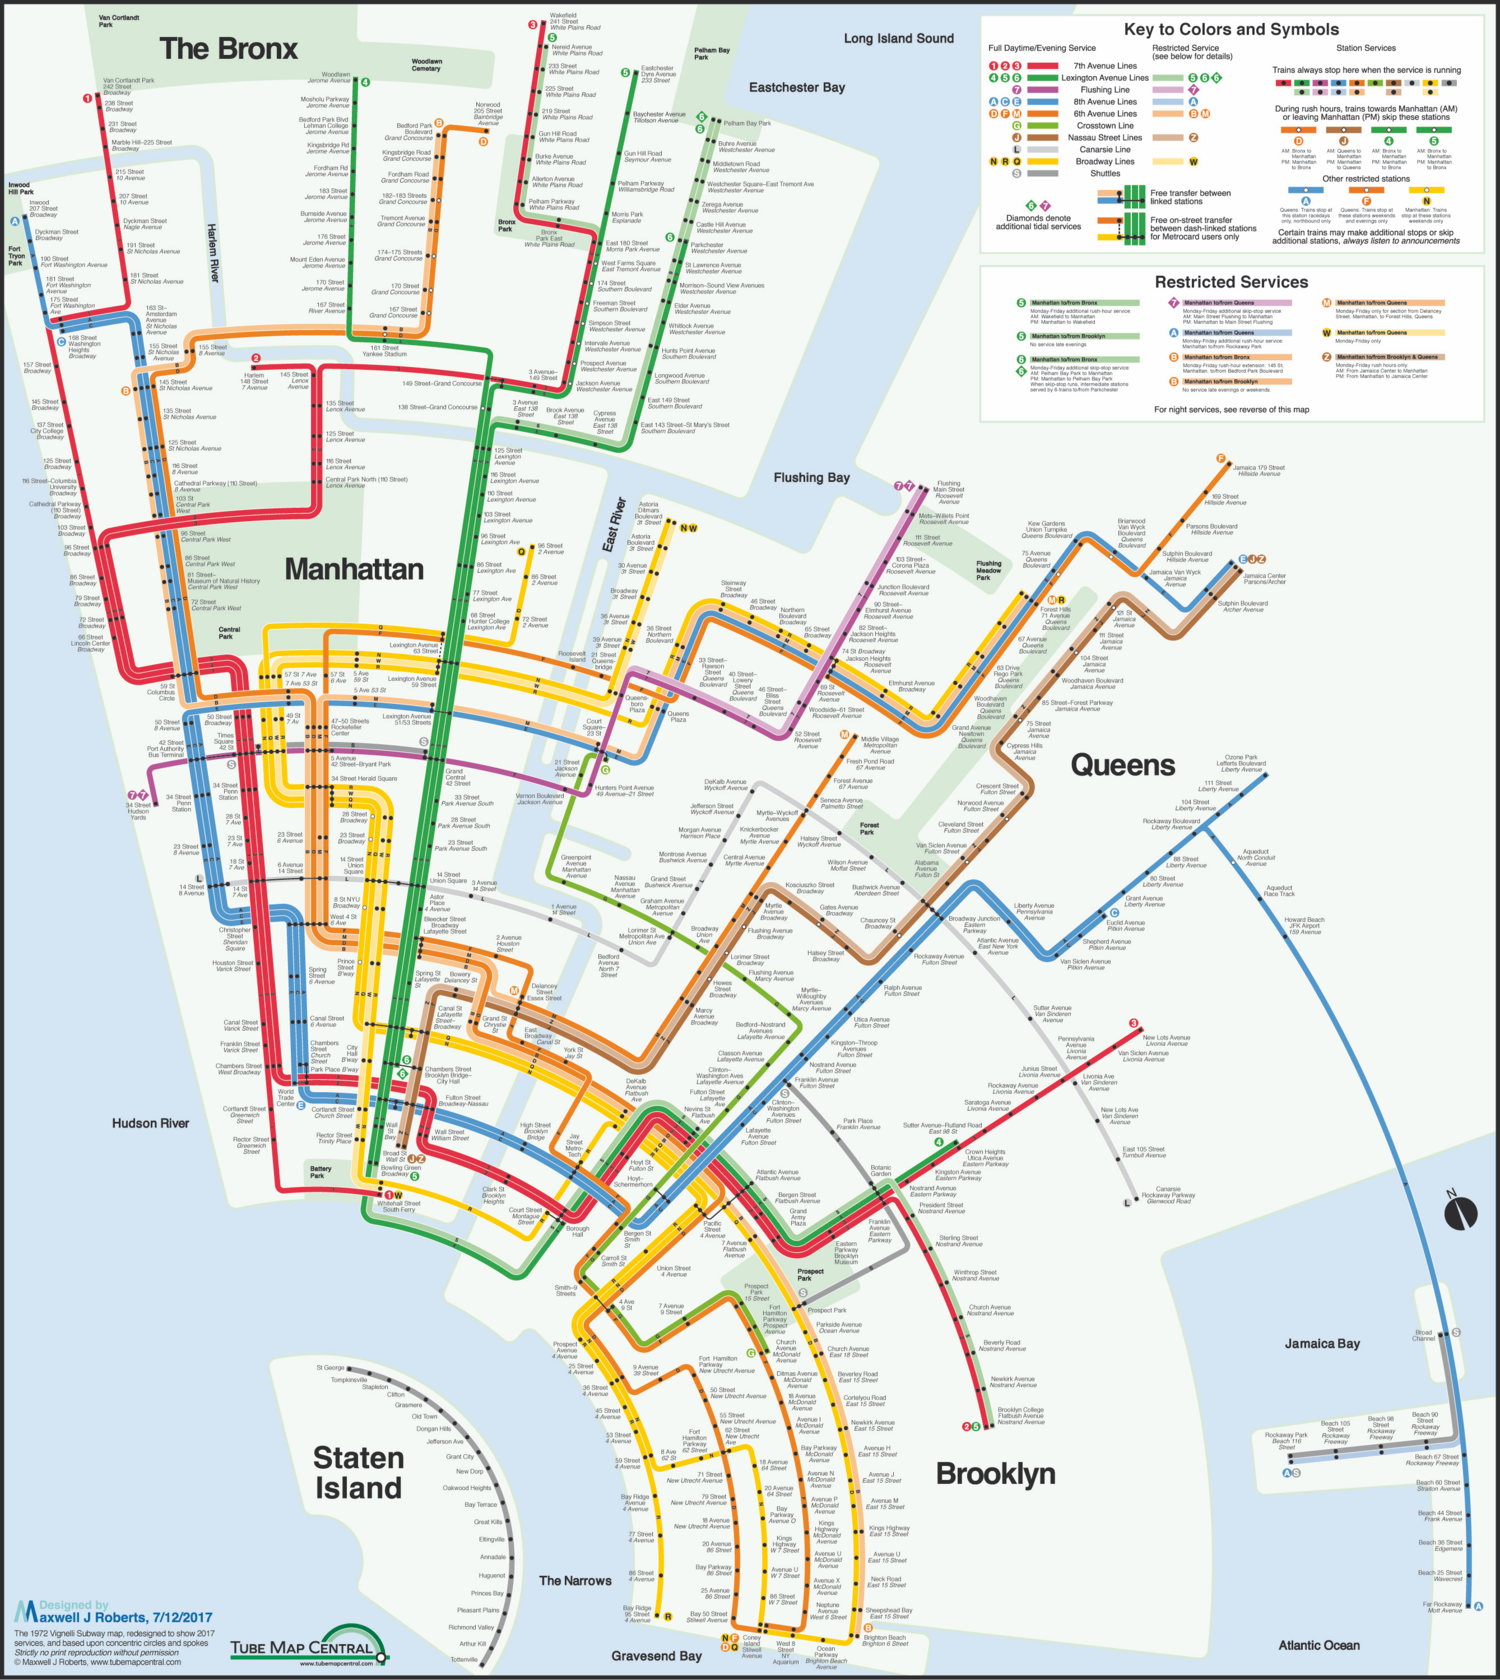 New York Subway Map Check Out This Vignelli Inspired New York City Subway Map Made of  New York Subway Map